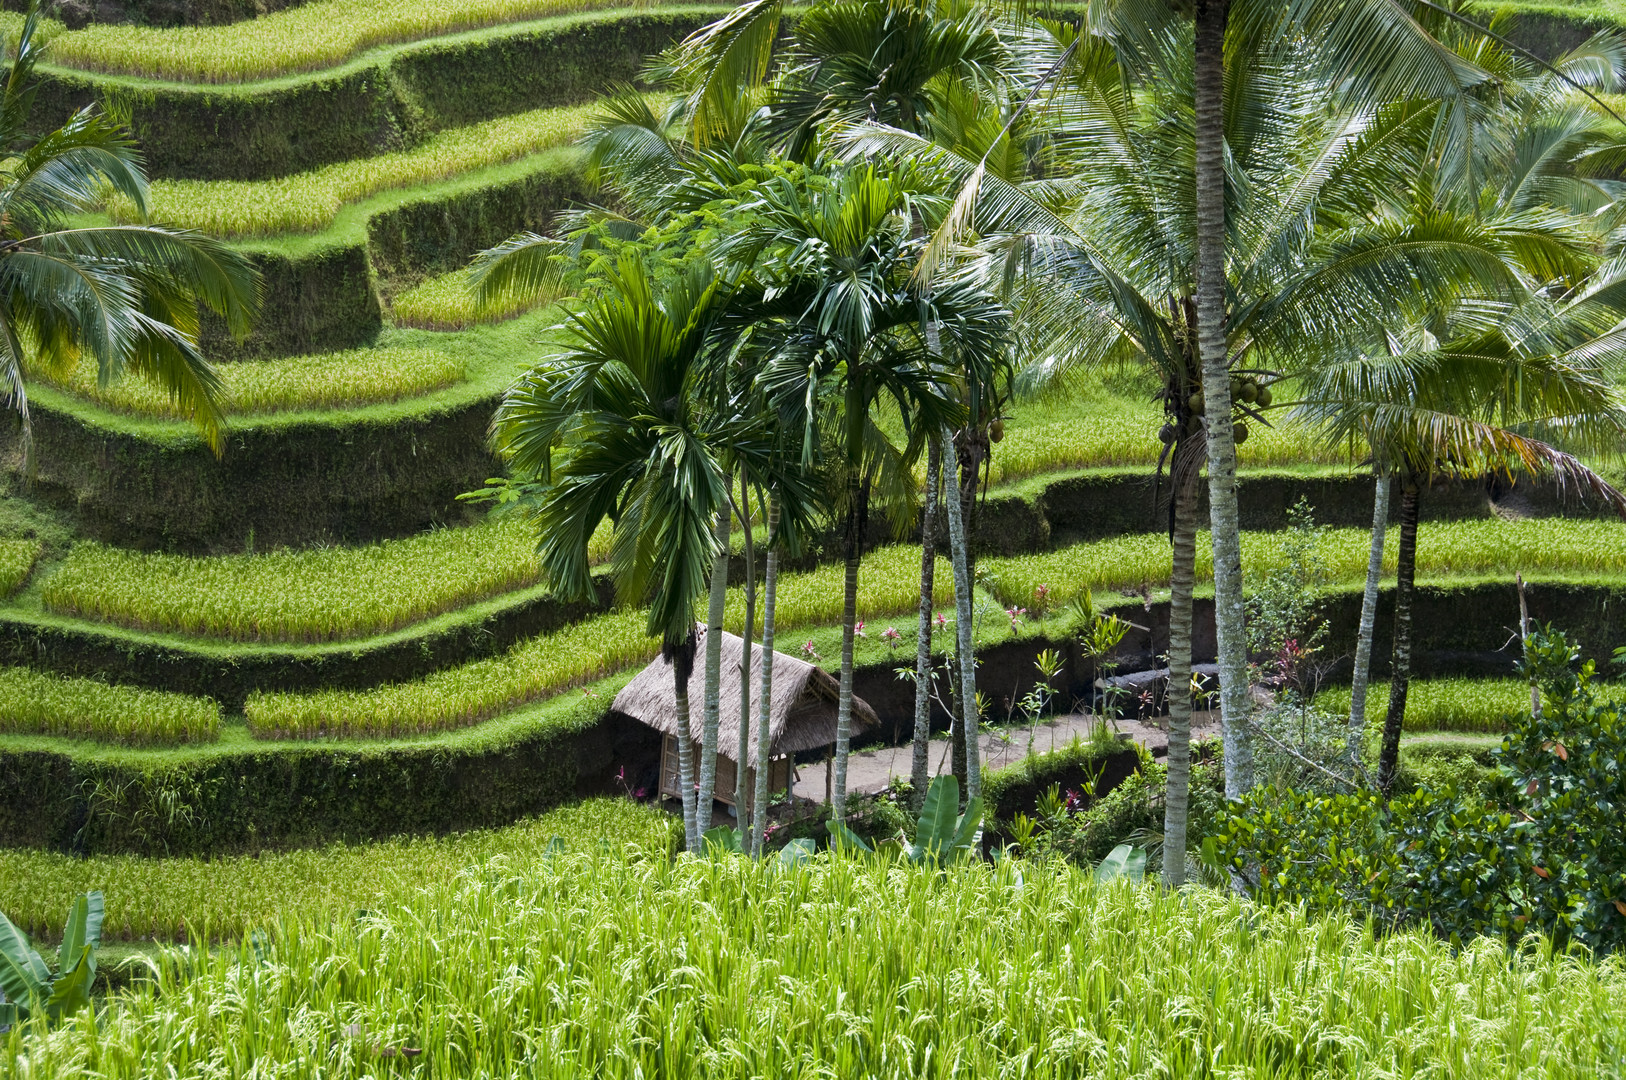 The rice terraces of Tegalalang and Ubud